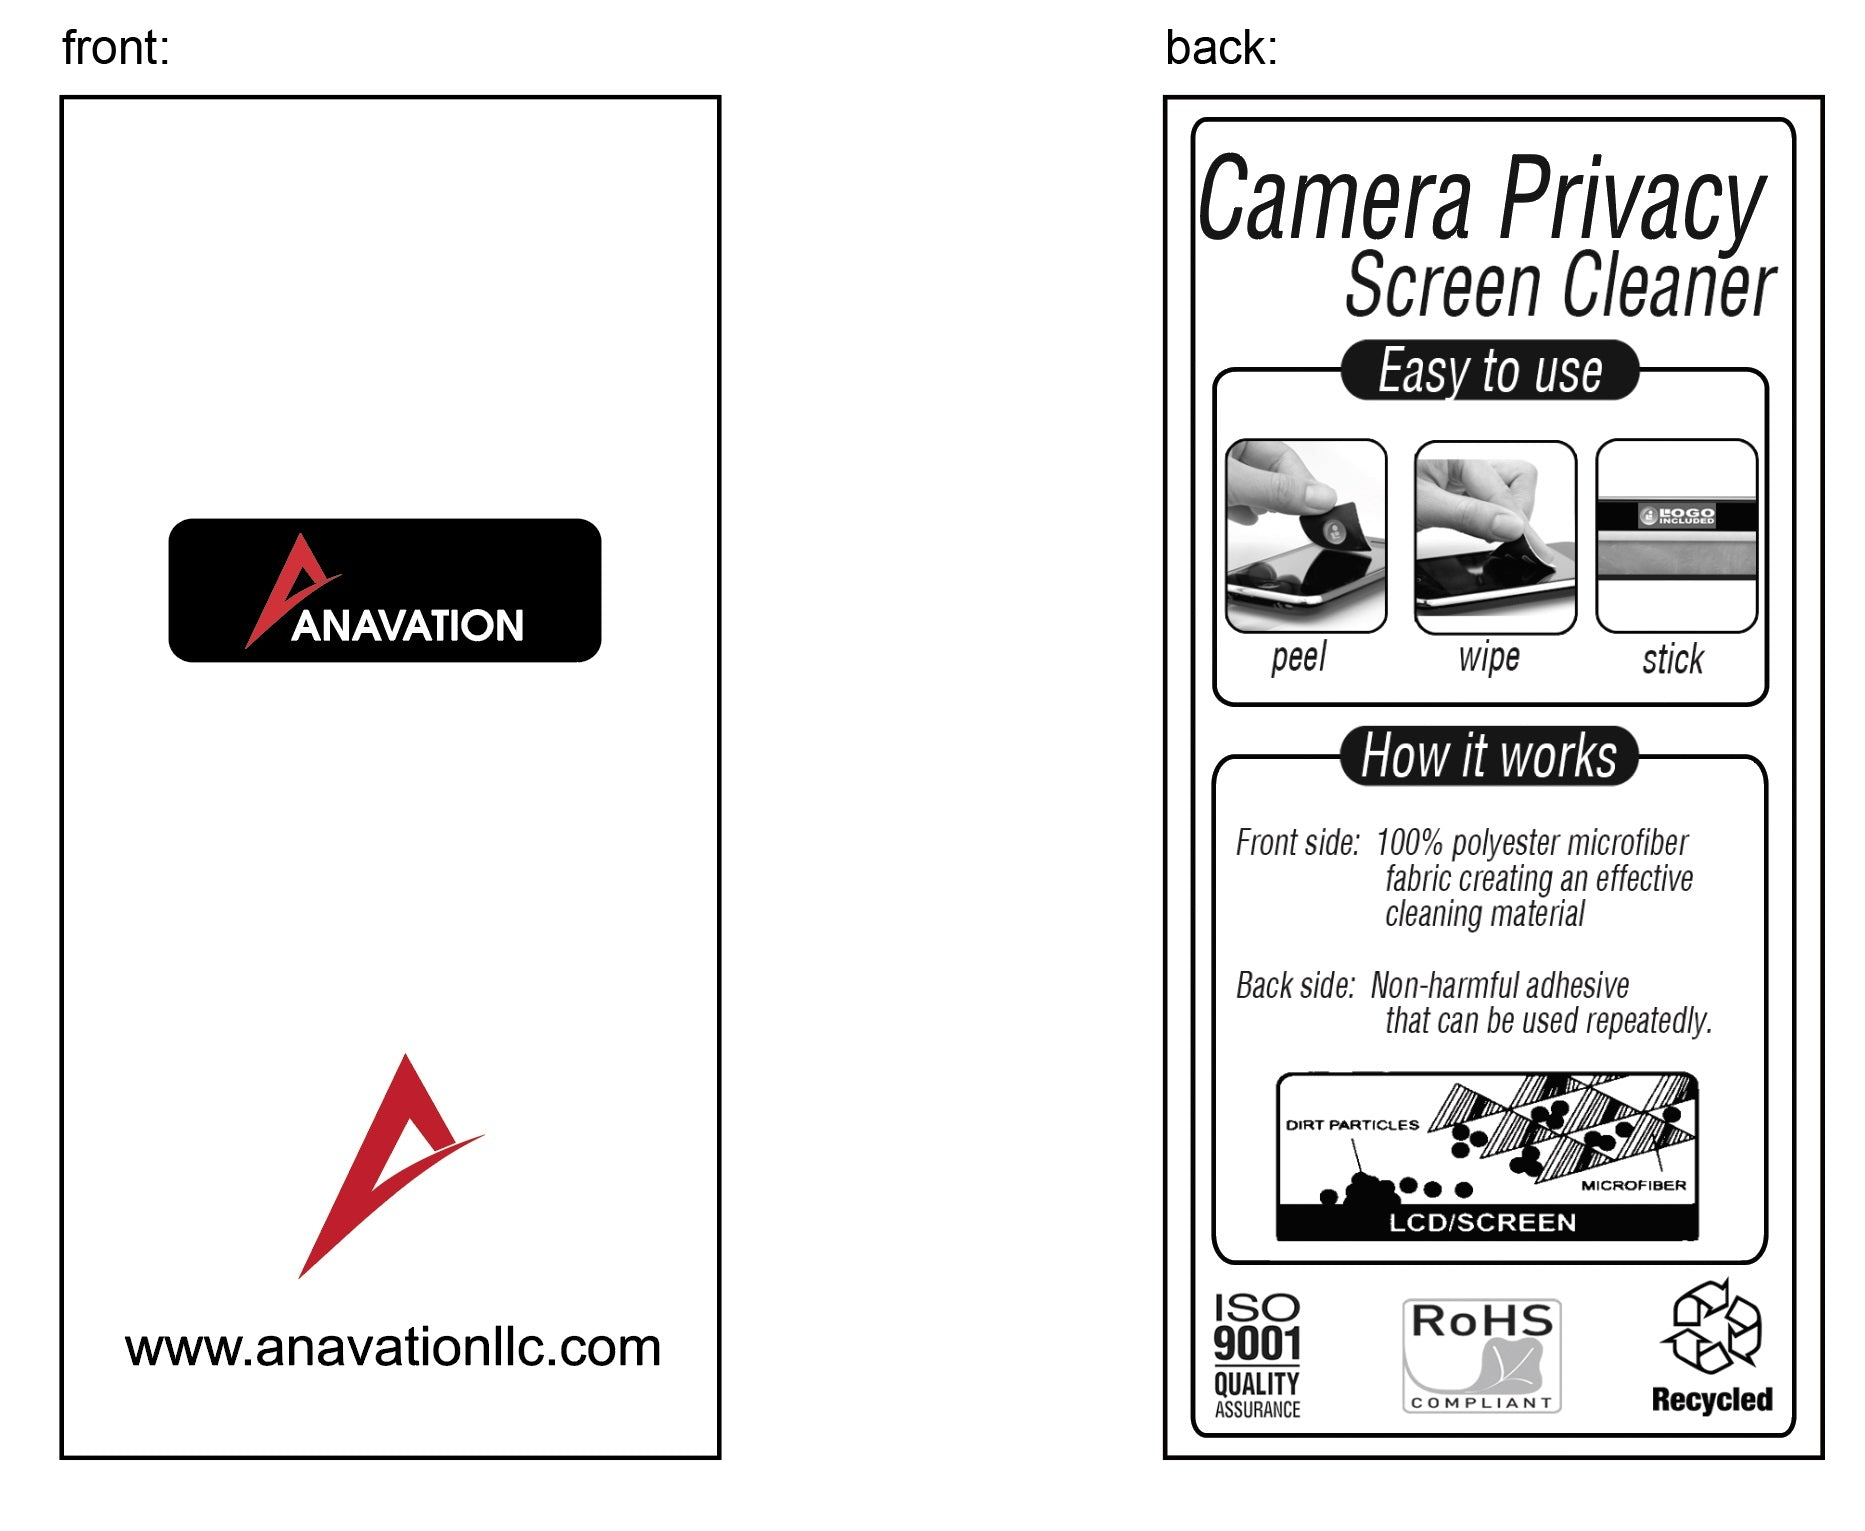 branded webcam cover insert card